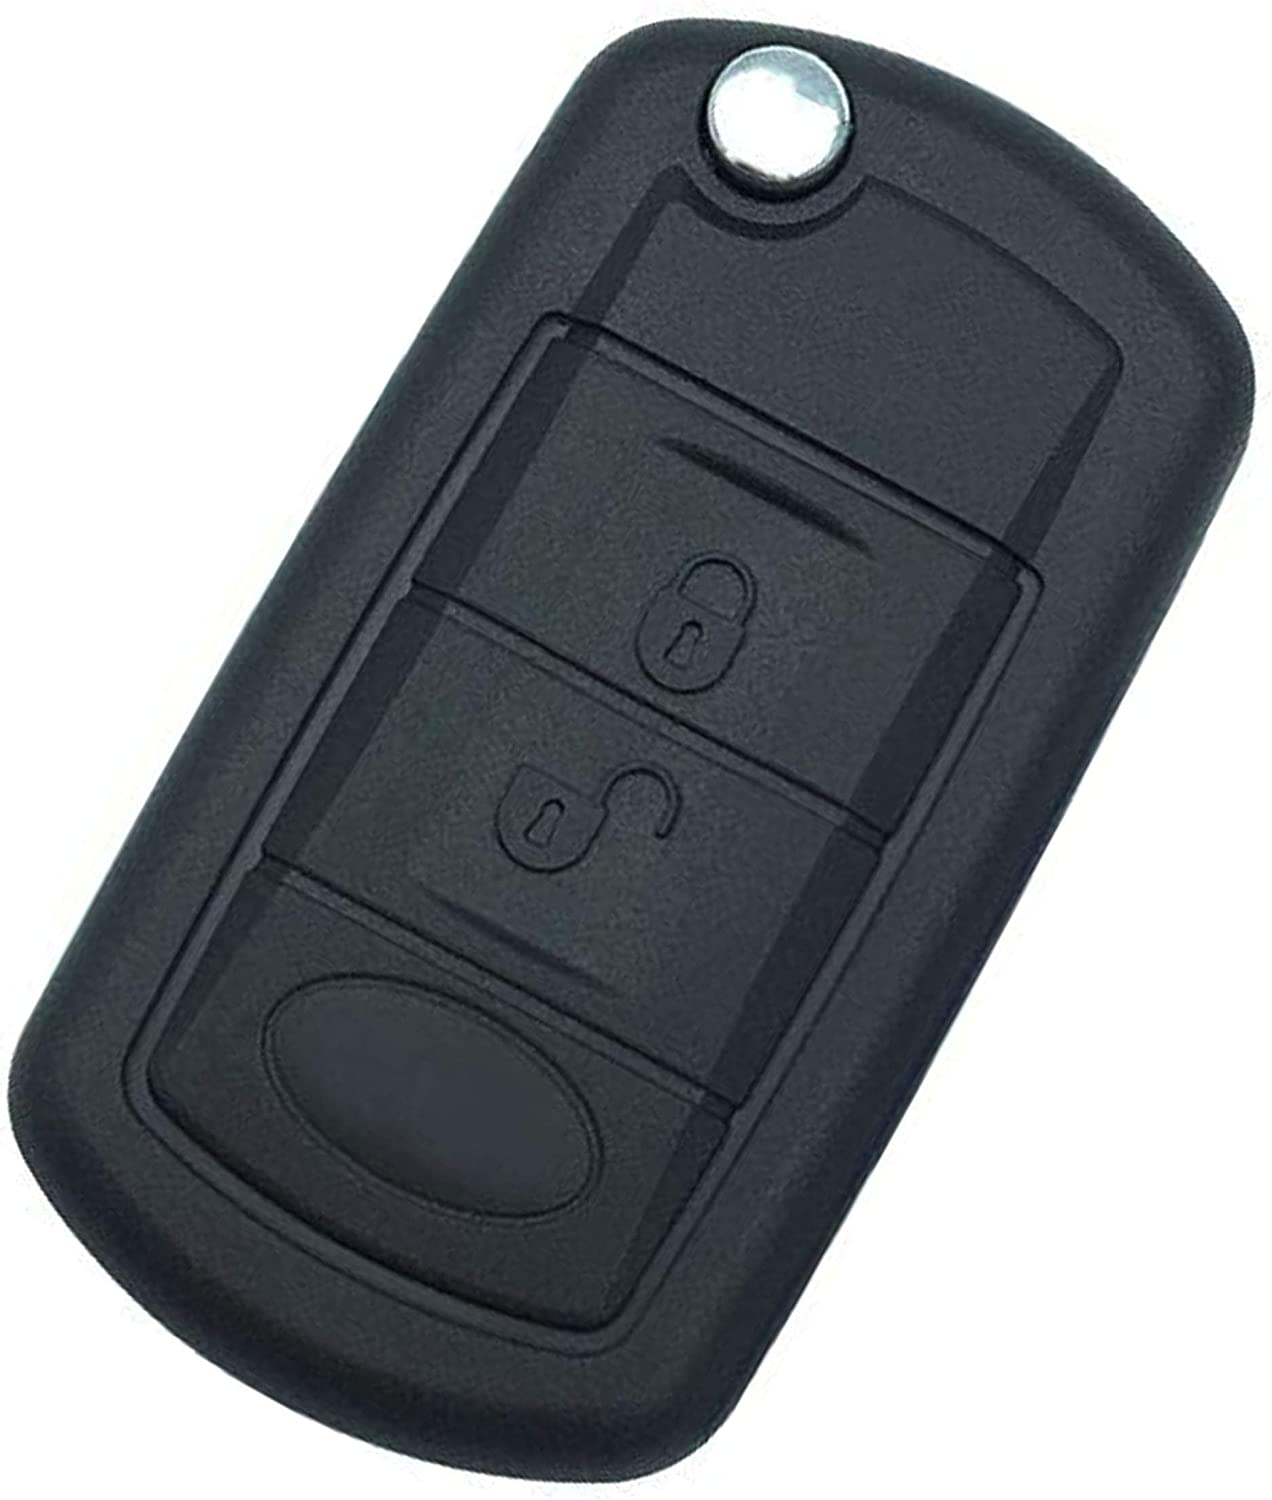 Replacement for Keyless Entry Smart Remote Control Key Fob Case Shell Fit For 2005-2010 Land Rover/Range Rover 2006-2009 Land Range Rover Sport 2005-2009 Land Rover LR3 Land Rover Discovery 3